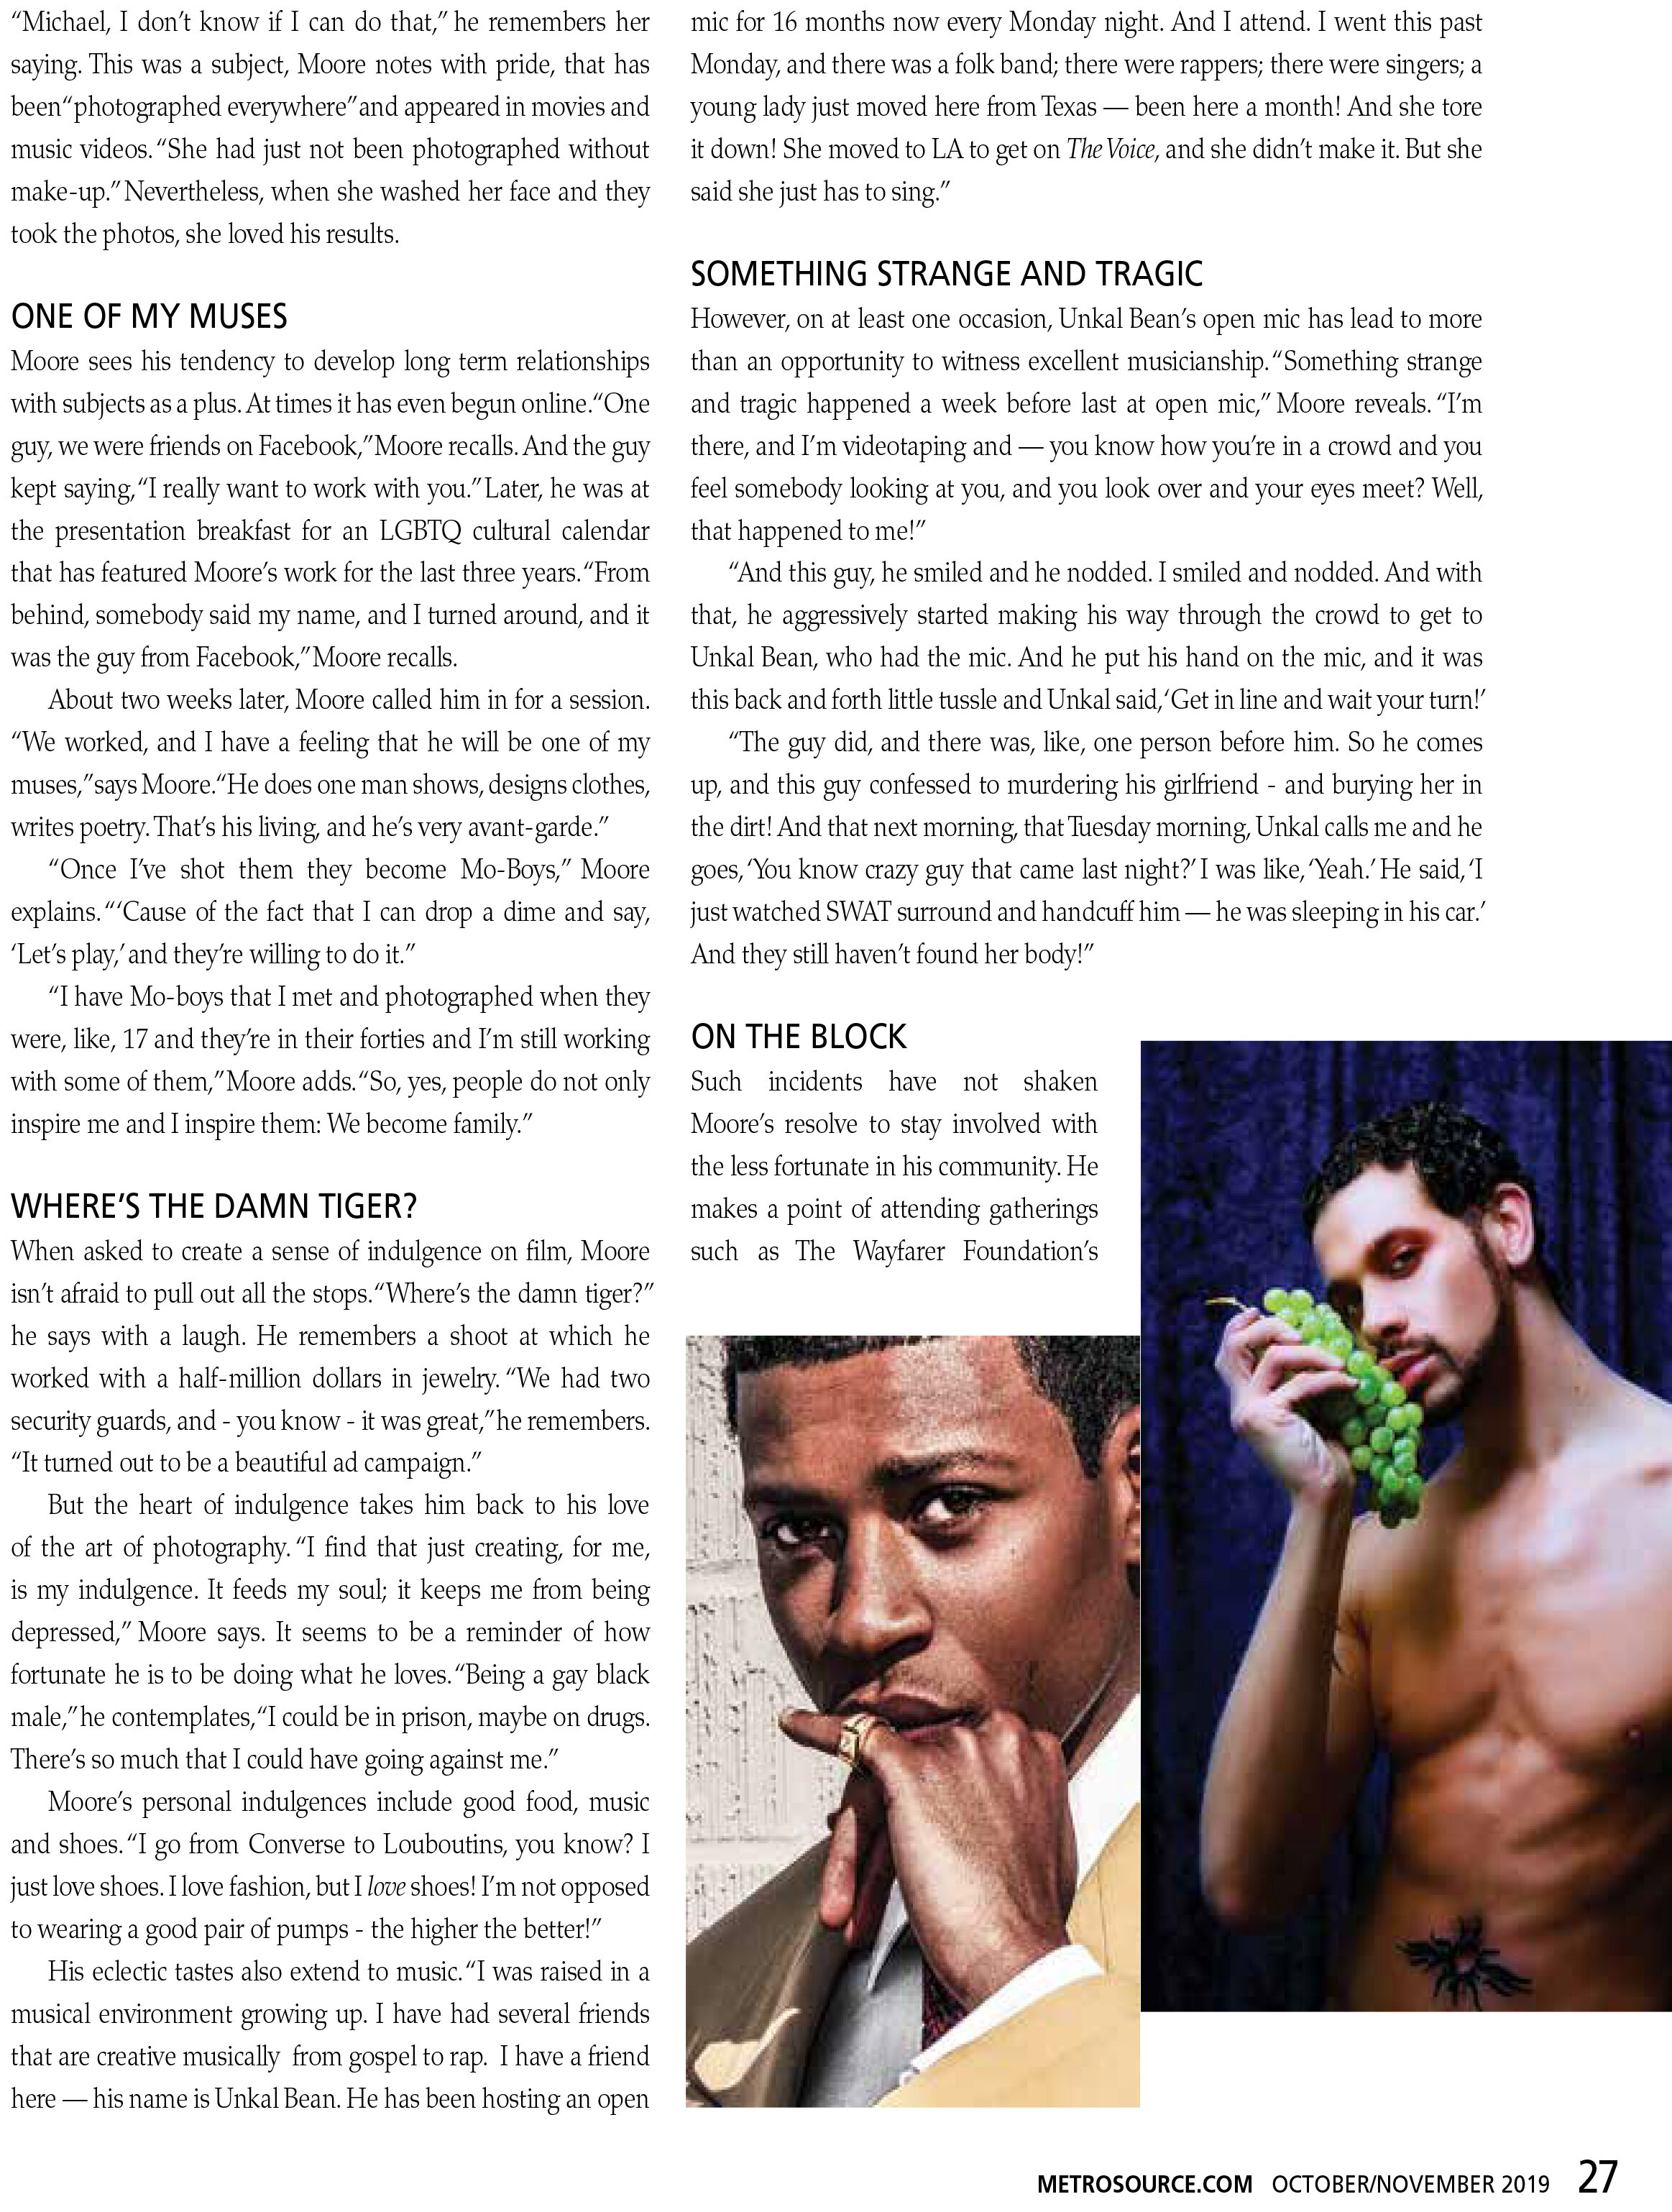 MICHAEL R. MOORE METRO SOURCE MAGAZINE FEATURED INTERVIEW Pg.27